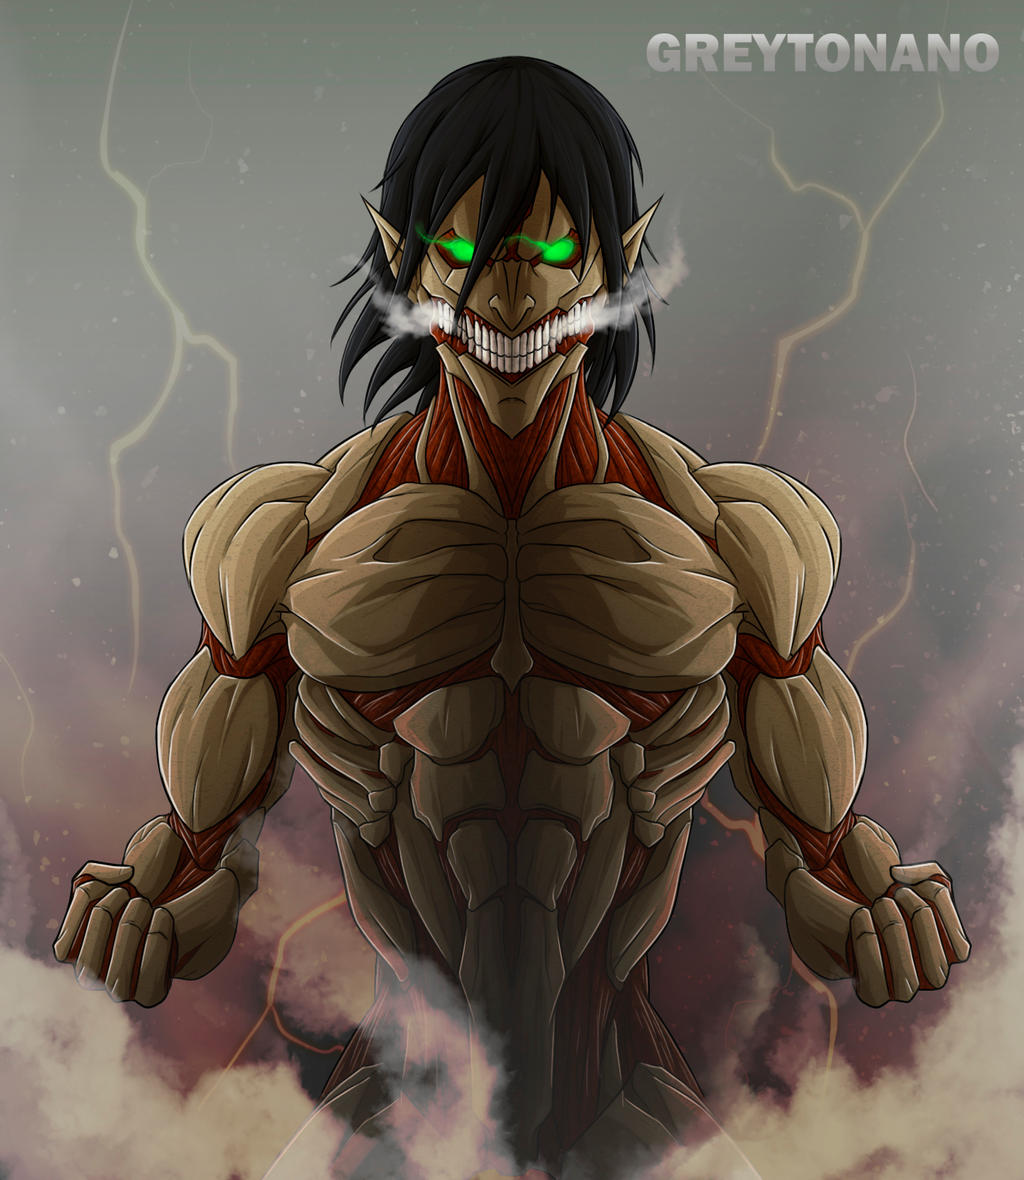 eren armored titan form by greytonano on deviantart. Black Bedroom Furniture Sets. Home Design Ideas